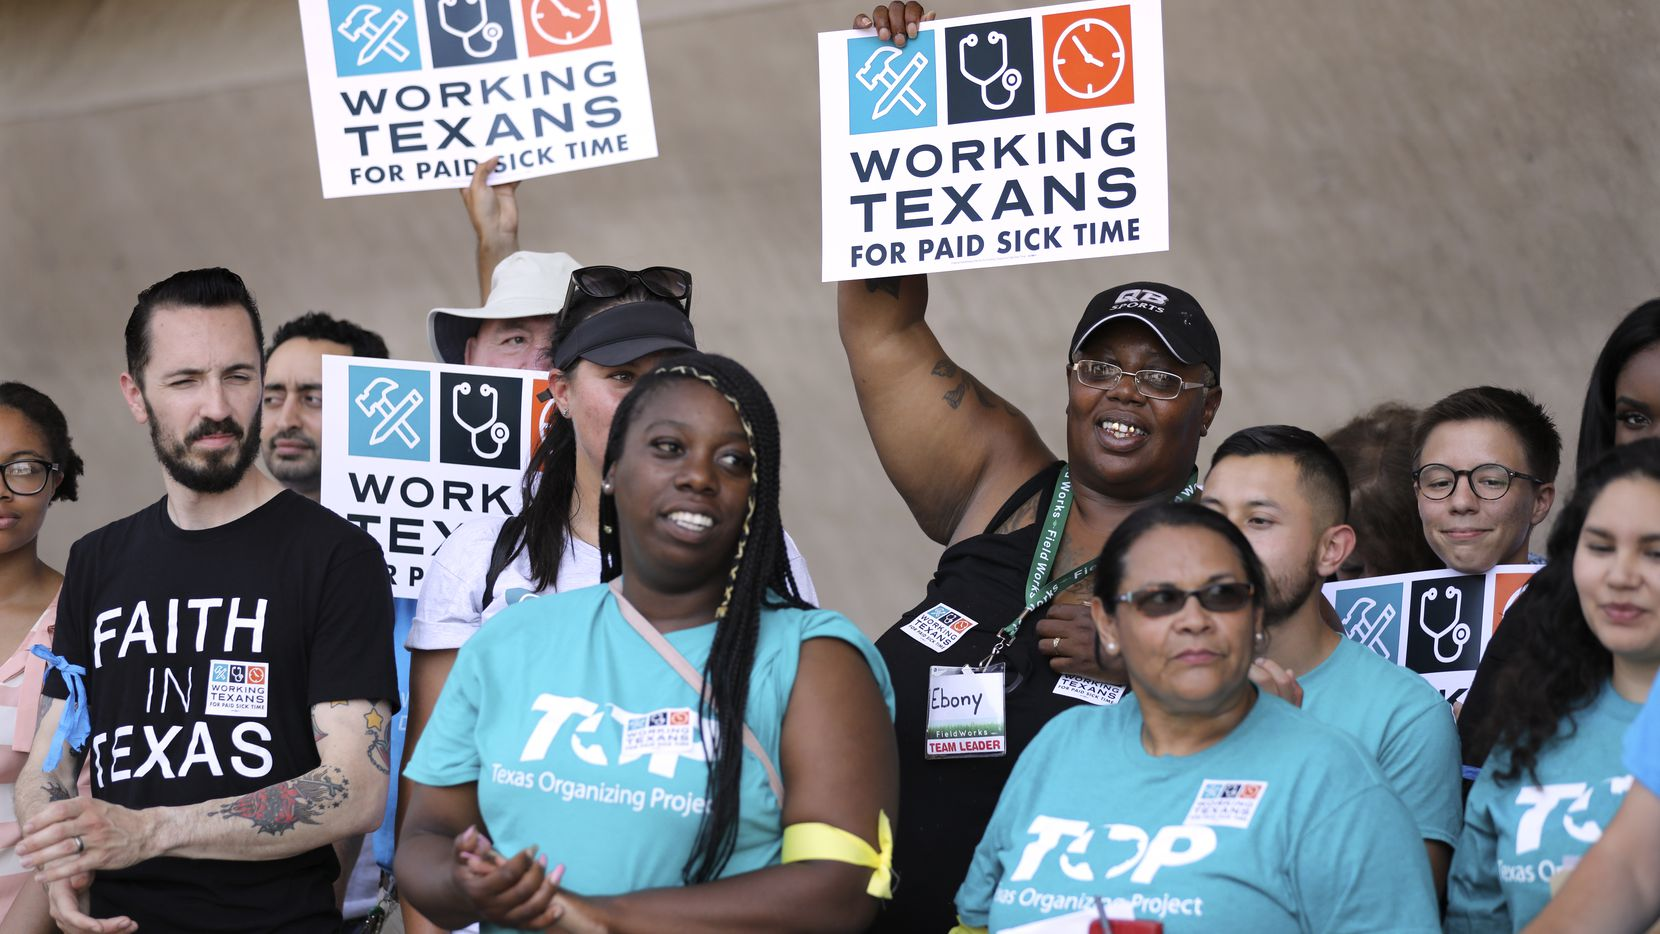 Supporters of a petition drive hold signs during a news conference before a coalition of labor and faith groups and political activists delivered petitions at Dallas City Hall calling for an ordinance mandating paid sick time to be placed on the November ballot June 11, 2018.